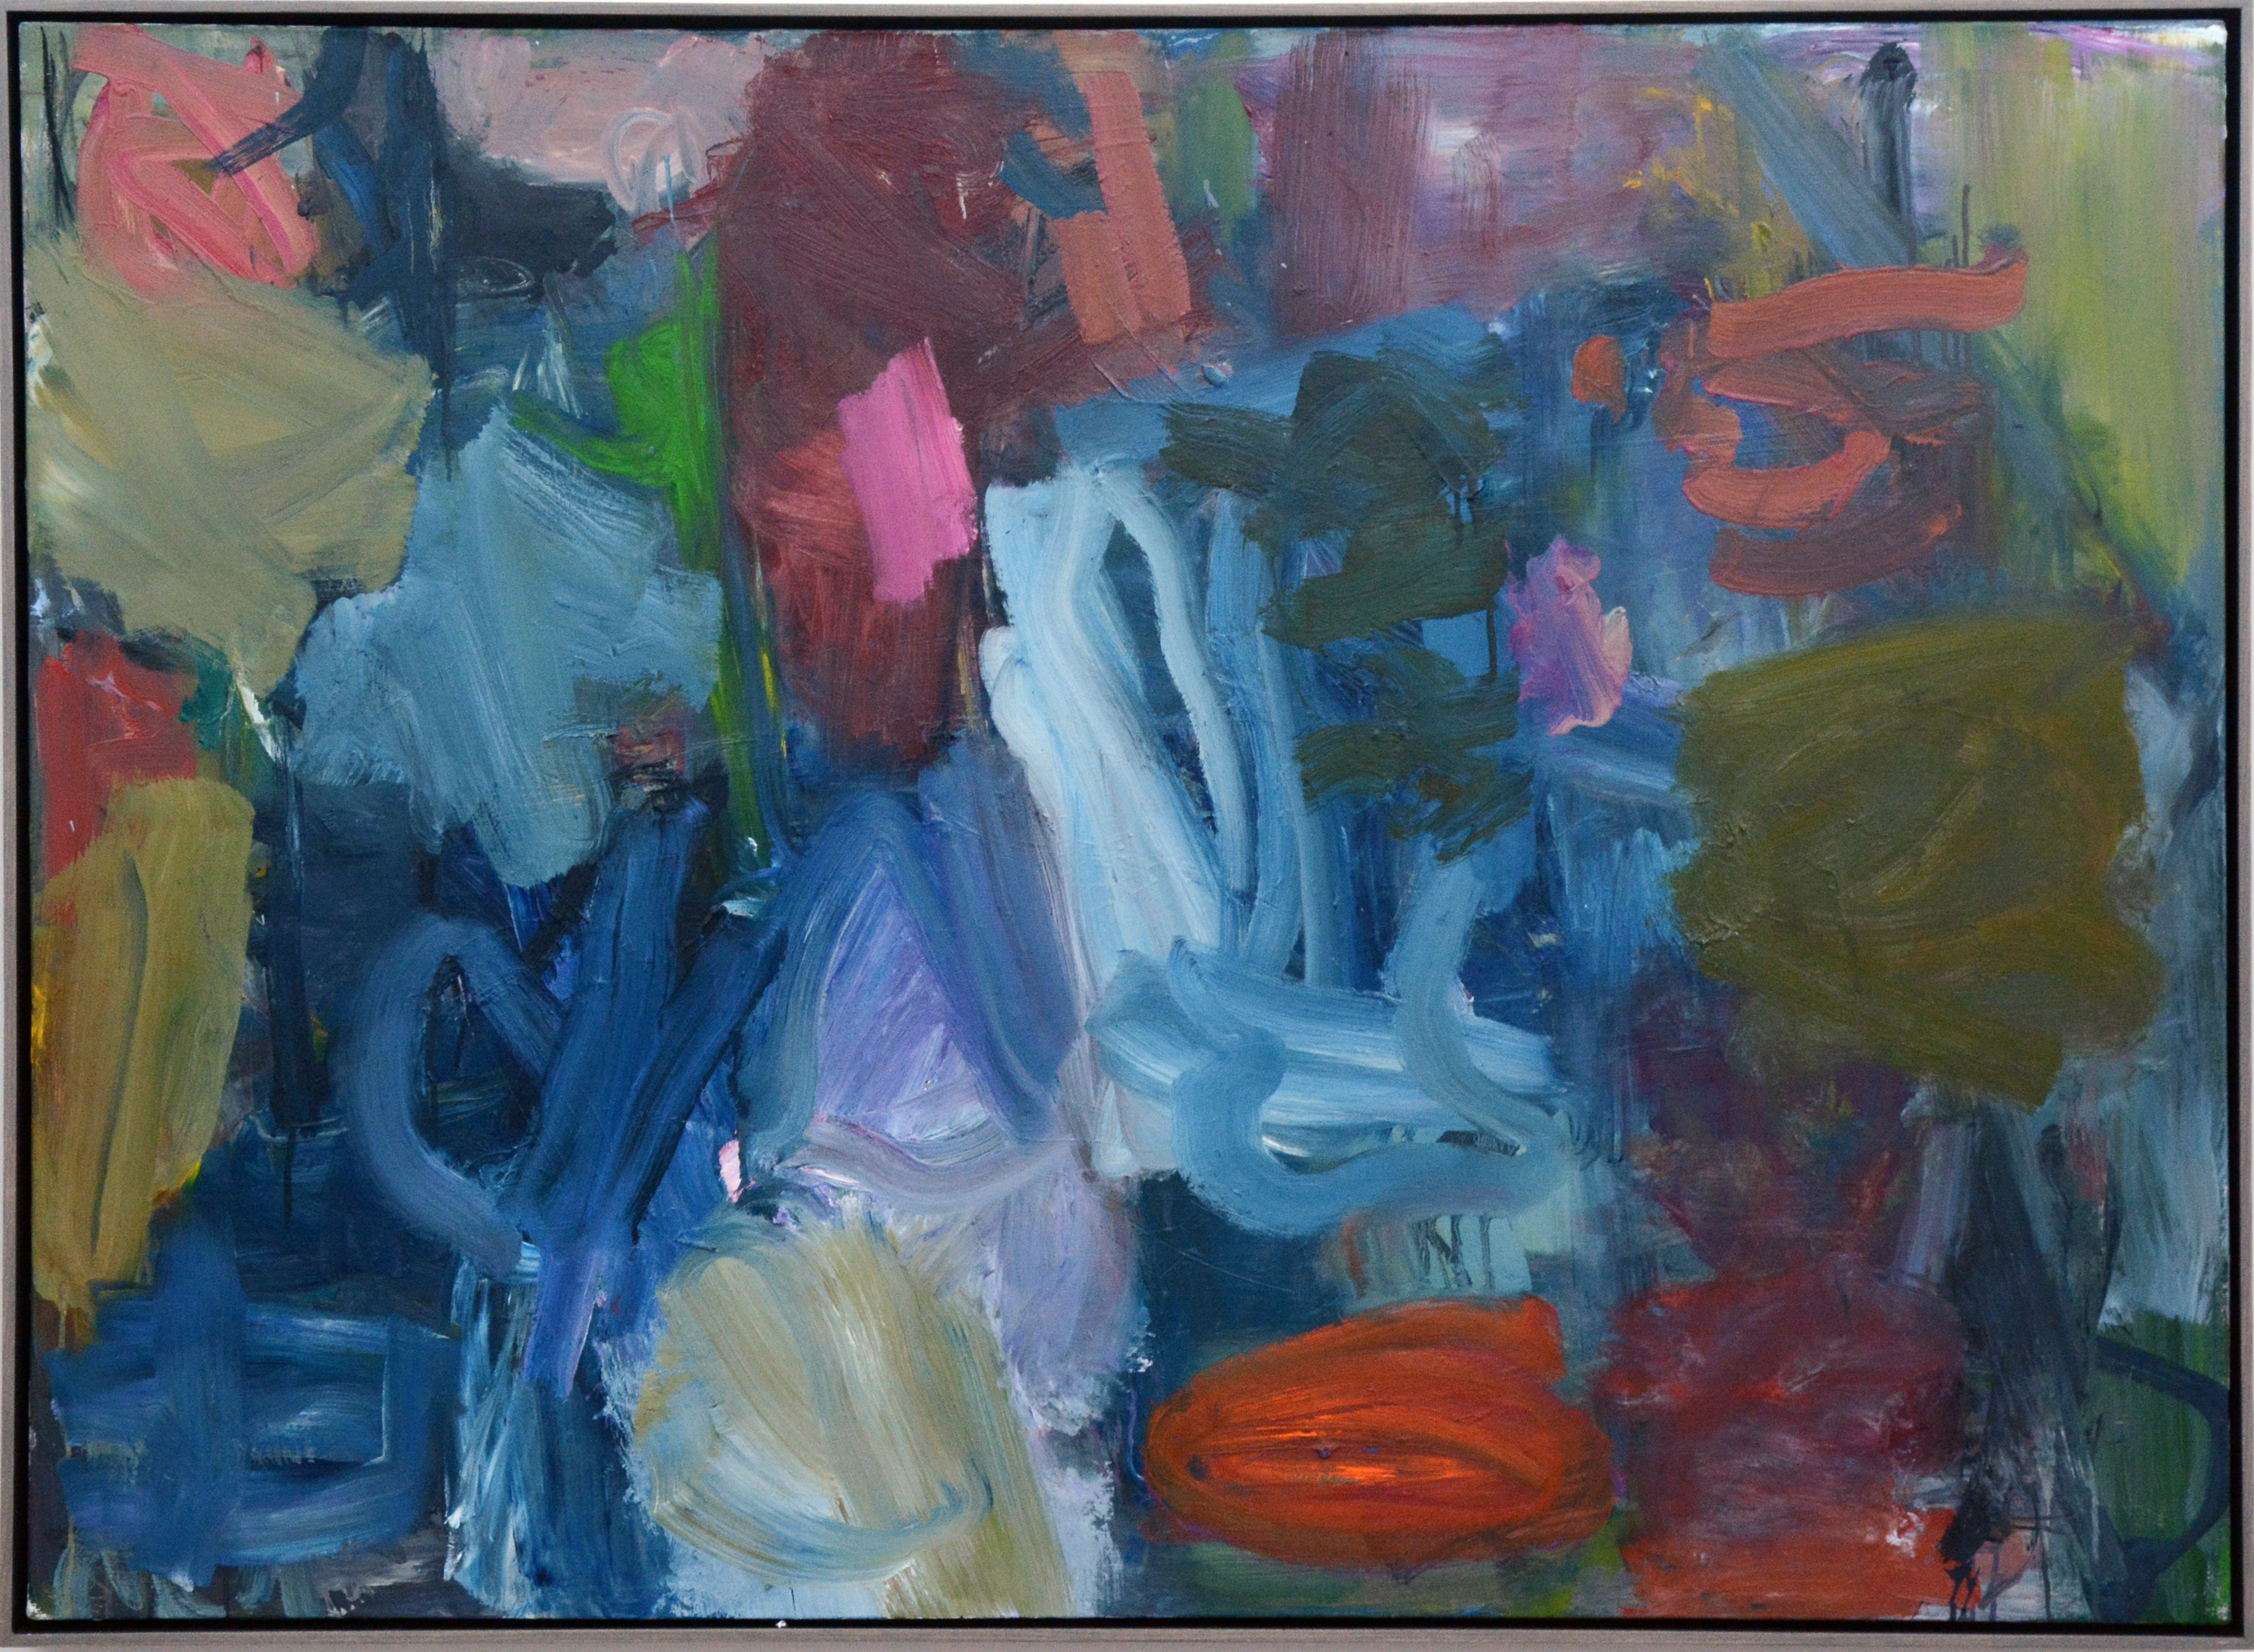 Clyde House No 87 - large, bold, colourful, gestural, abstract, oil on canvas